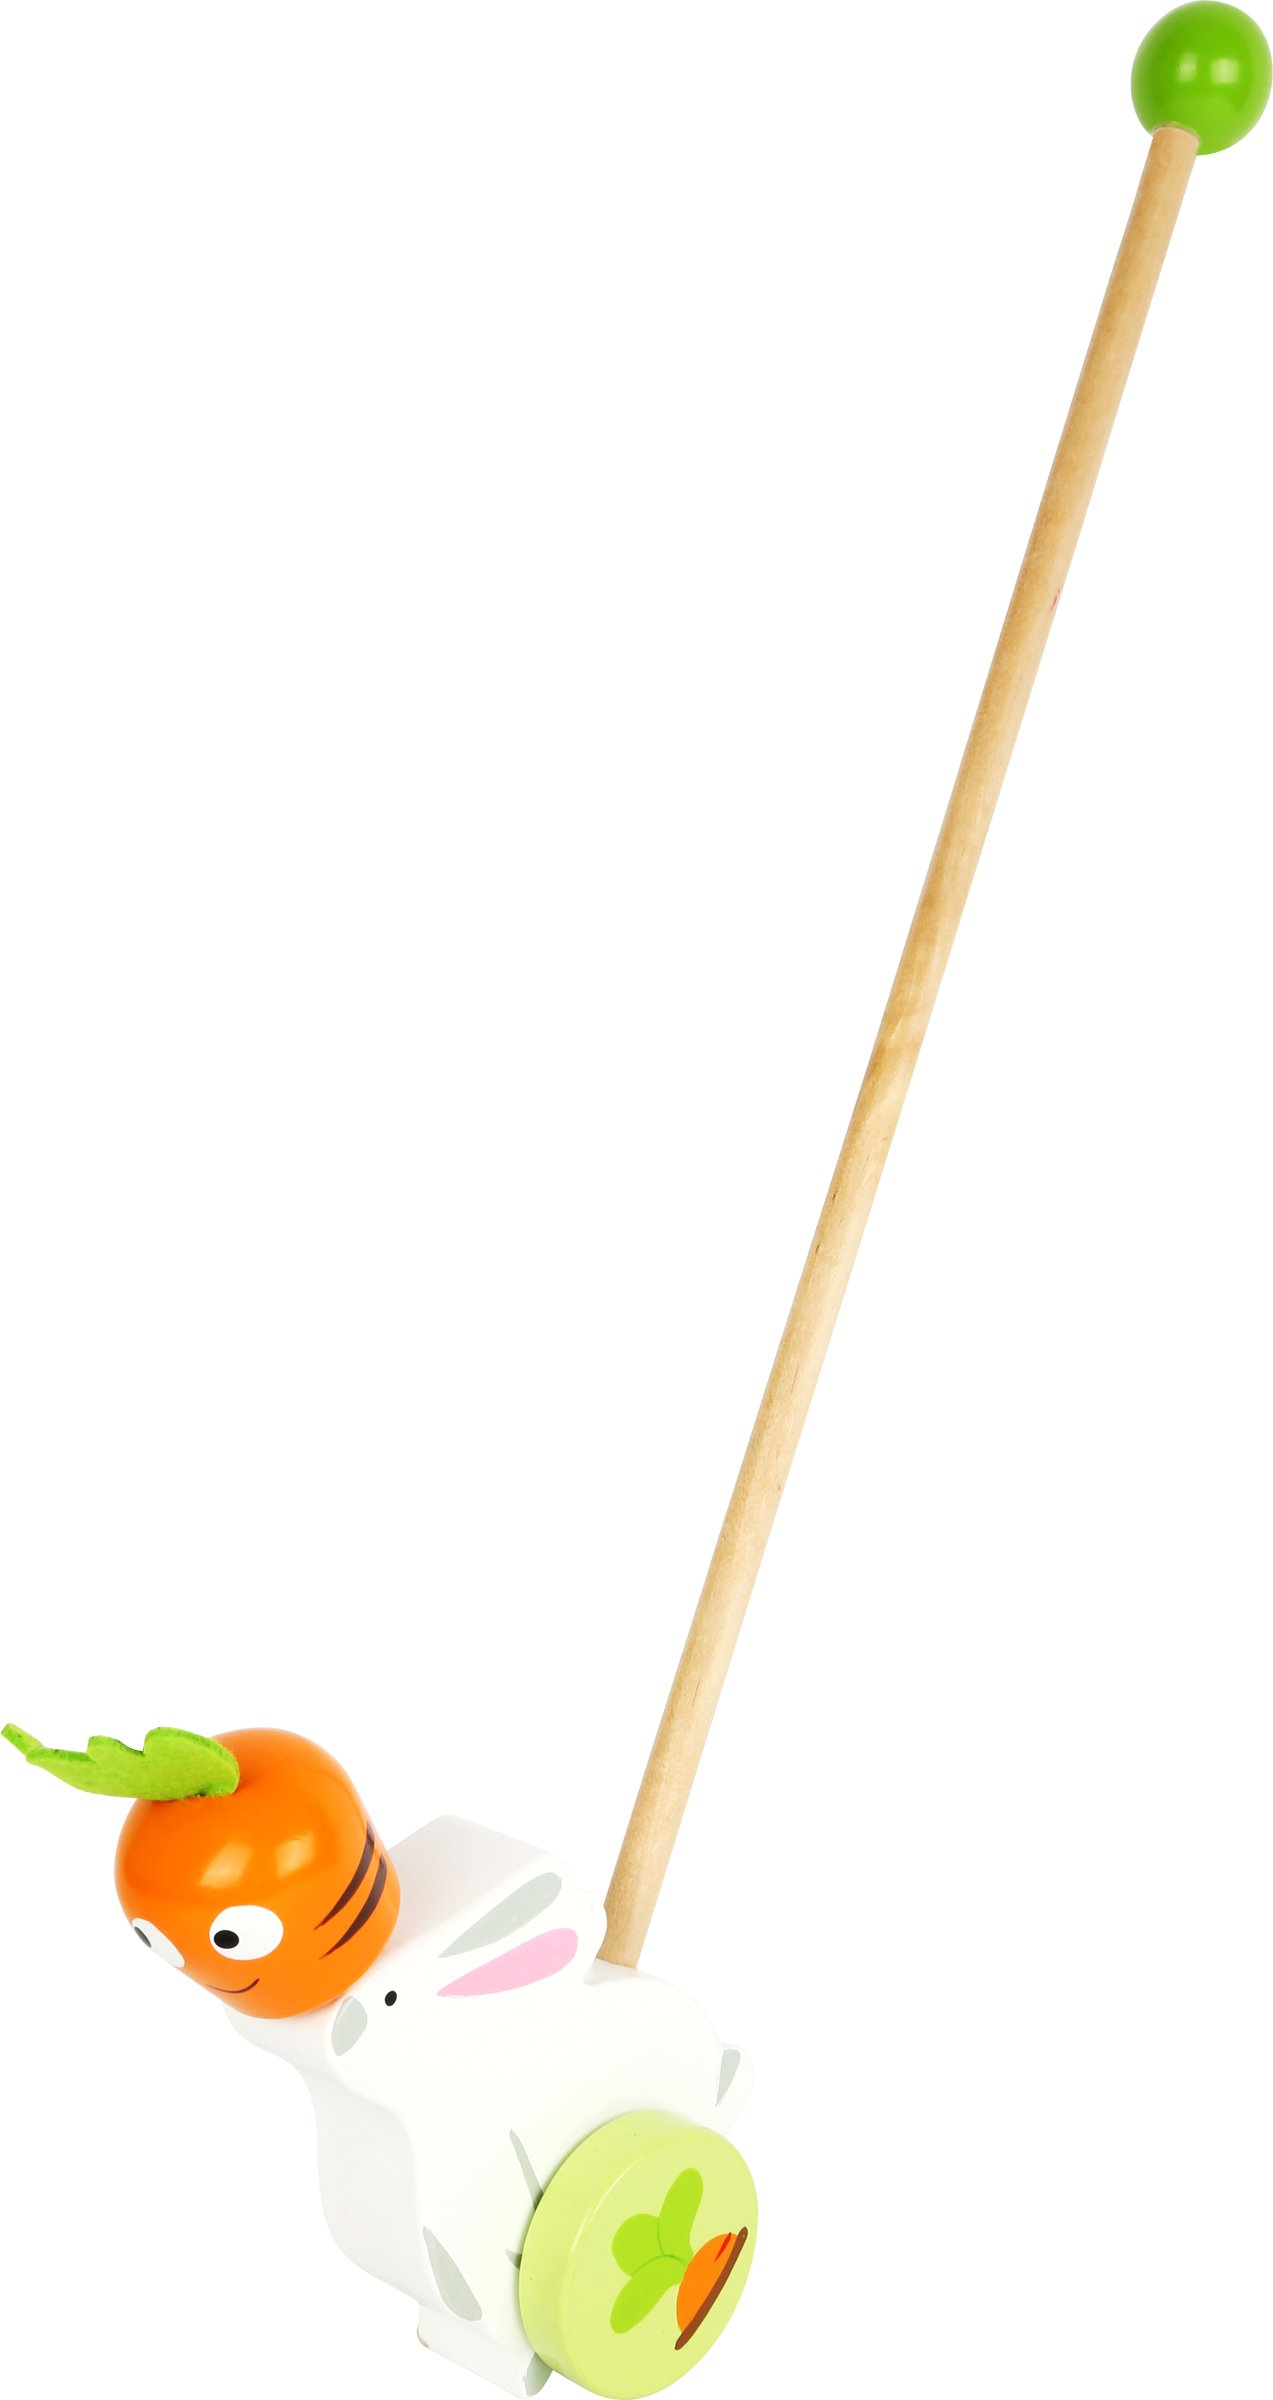 Small Foot 10574 Toy Hare with a Long Wooden Rod for Easy Pushing and Holding, Colourful Wheels Move The Bunny with The Rotating Carrot Forward